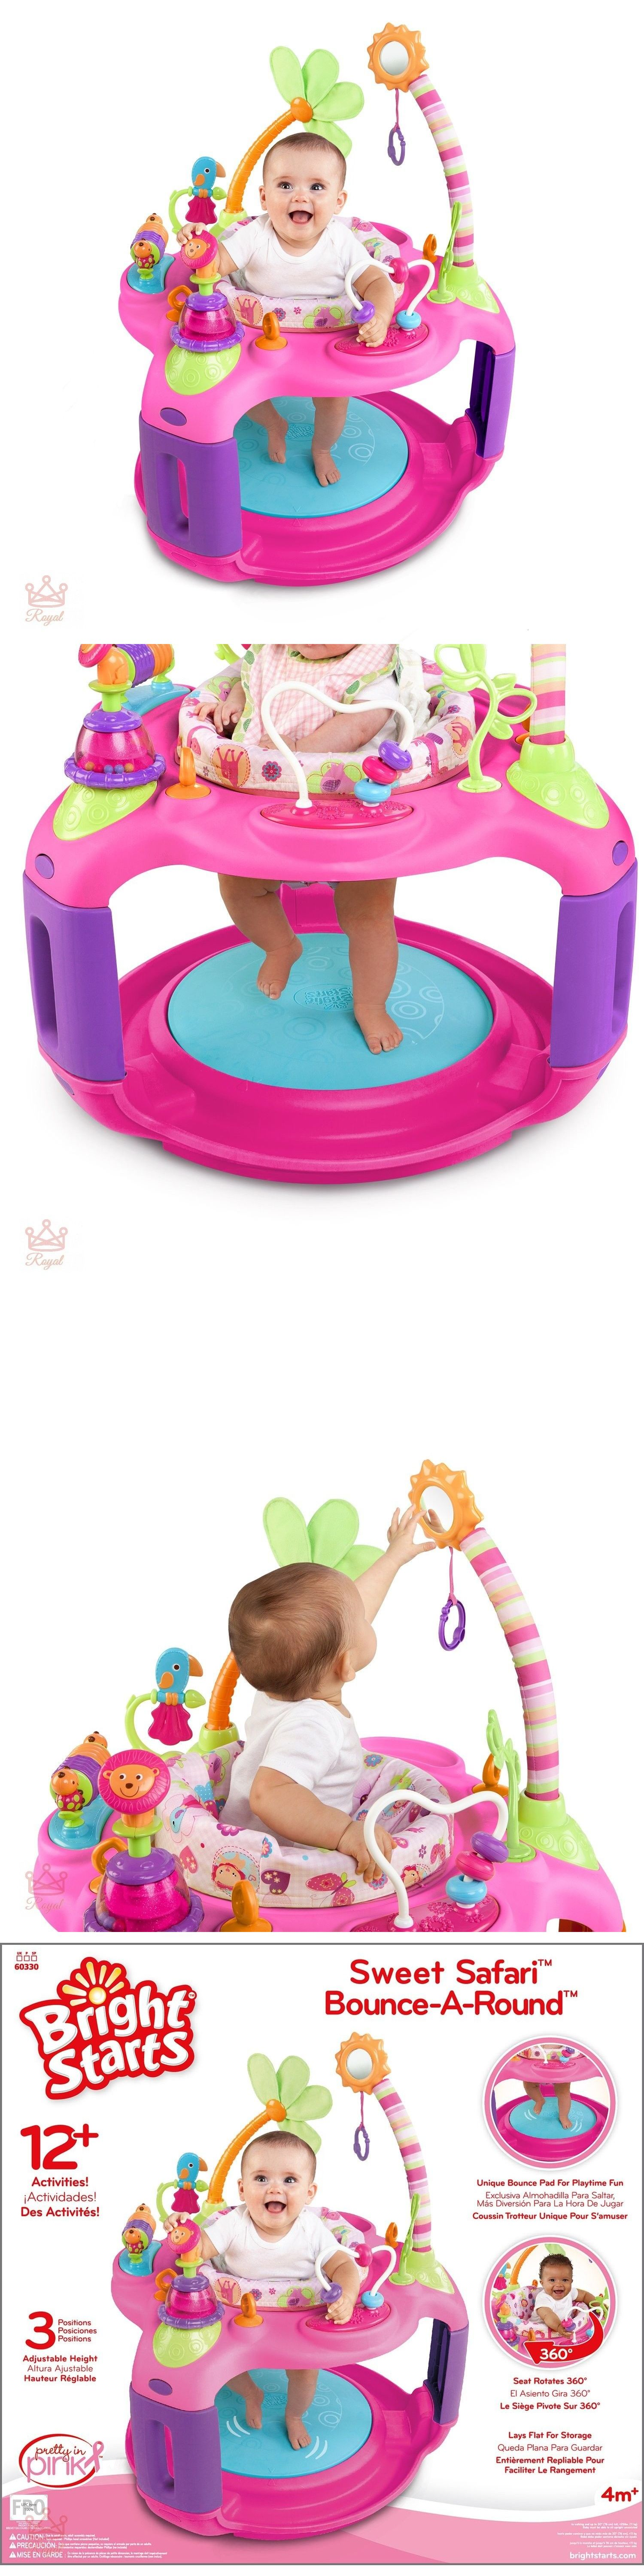 af48c96e2 Activity Centers 20413  Baby Entertainer Jumperoo Exersaucer Jumper ...